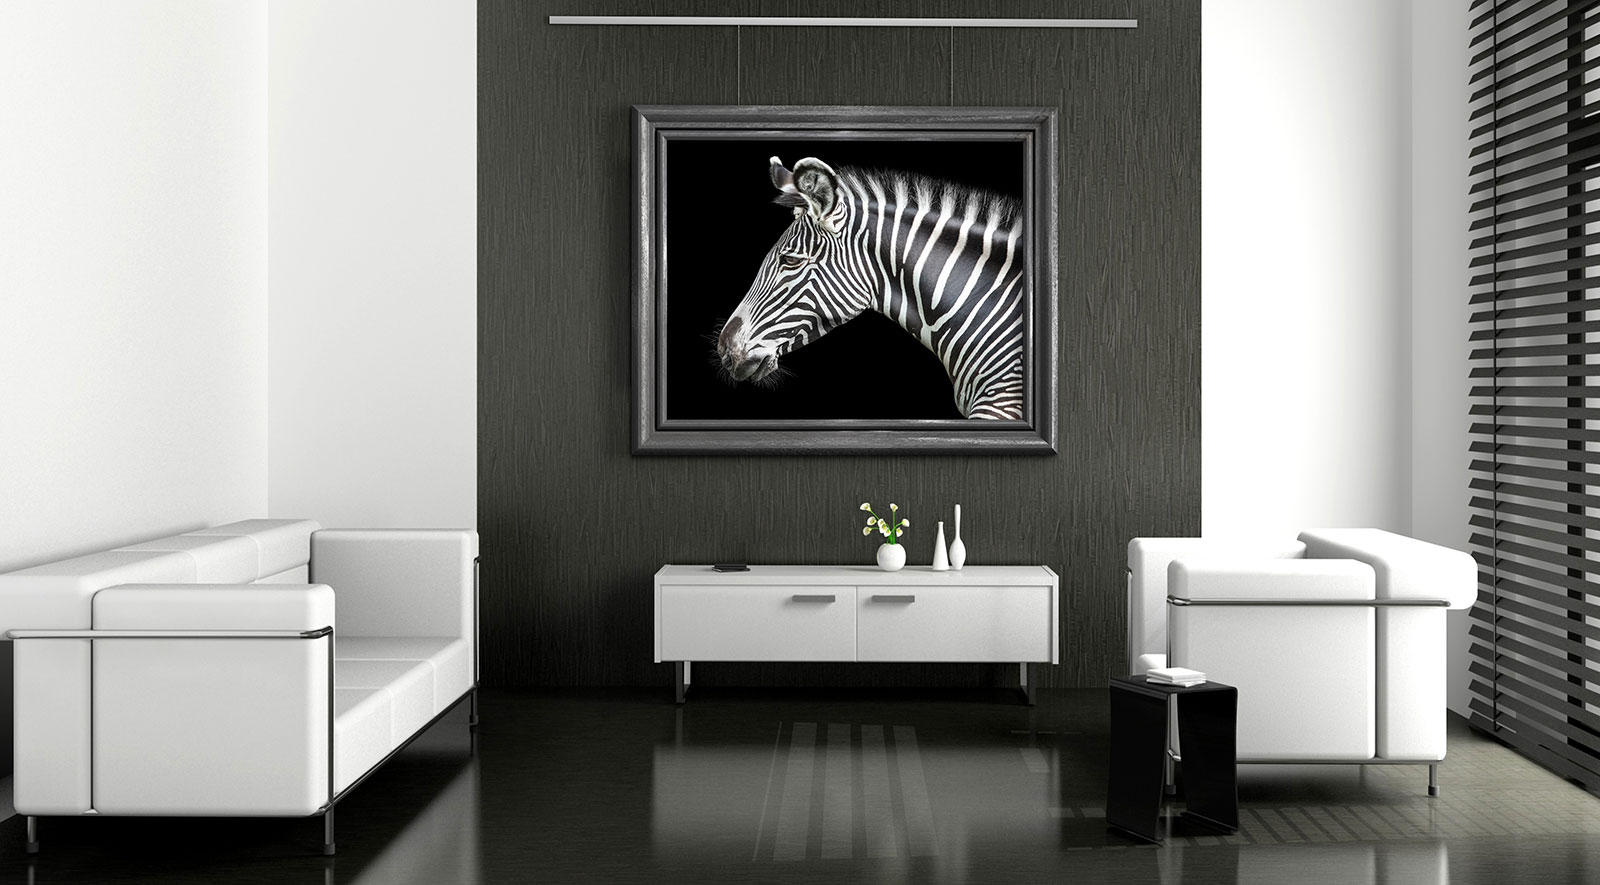 galerieschienen set premium 2 m in silber bilderschiene robust inkl zubeh r ebay. Black Bedroom Furniture Sets. Home Design Ideas